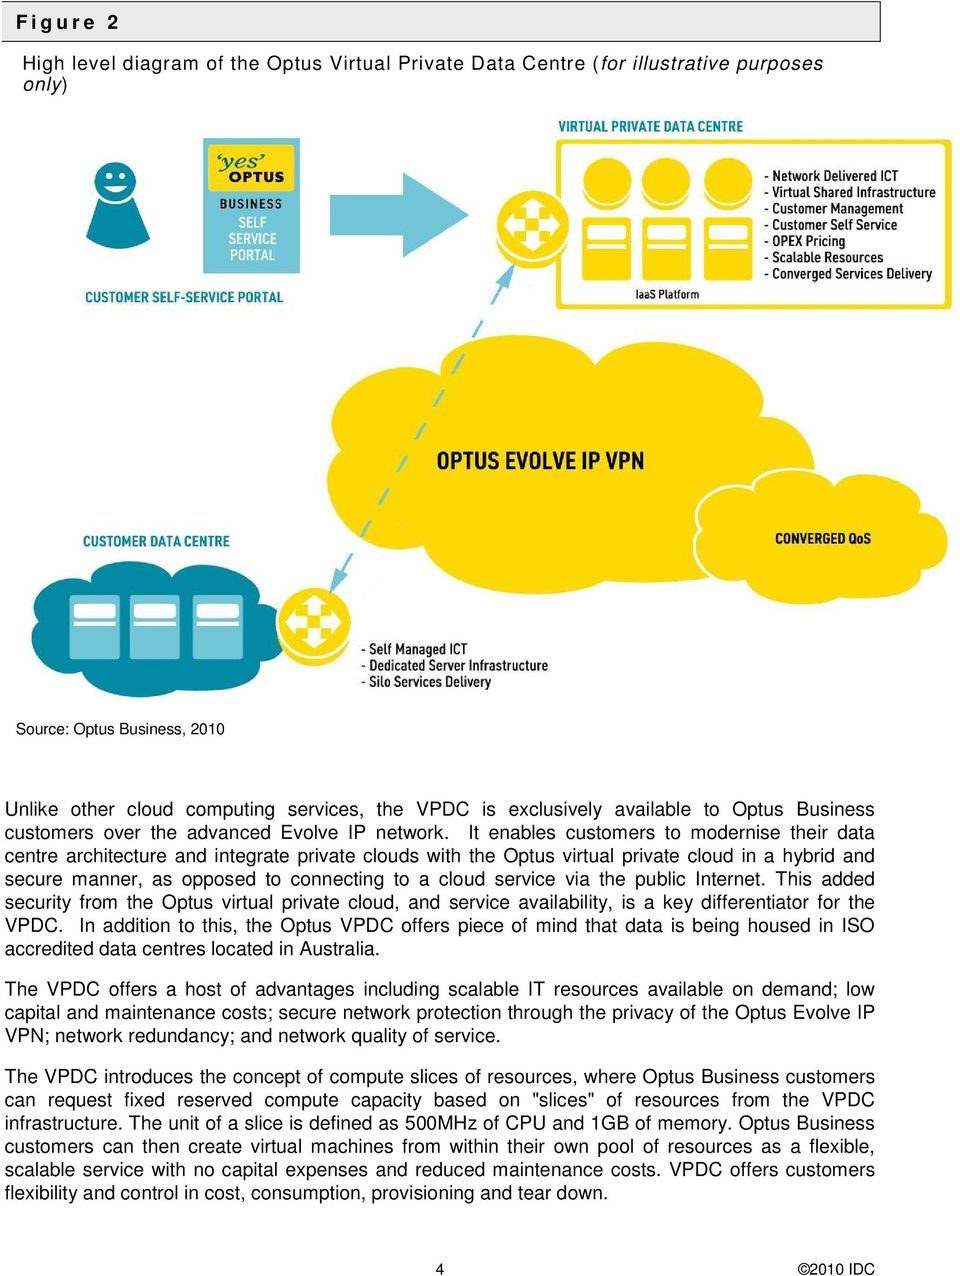 It enables customers to modernise their data centre architecture and integrate private clouds with the Optus virtual private cloud in a hybrid and secure manner, as opposed to connecting to a cloud